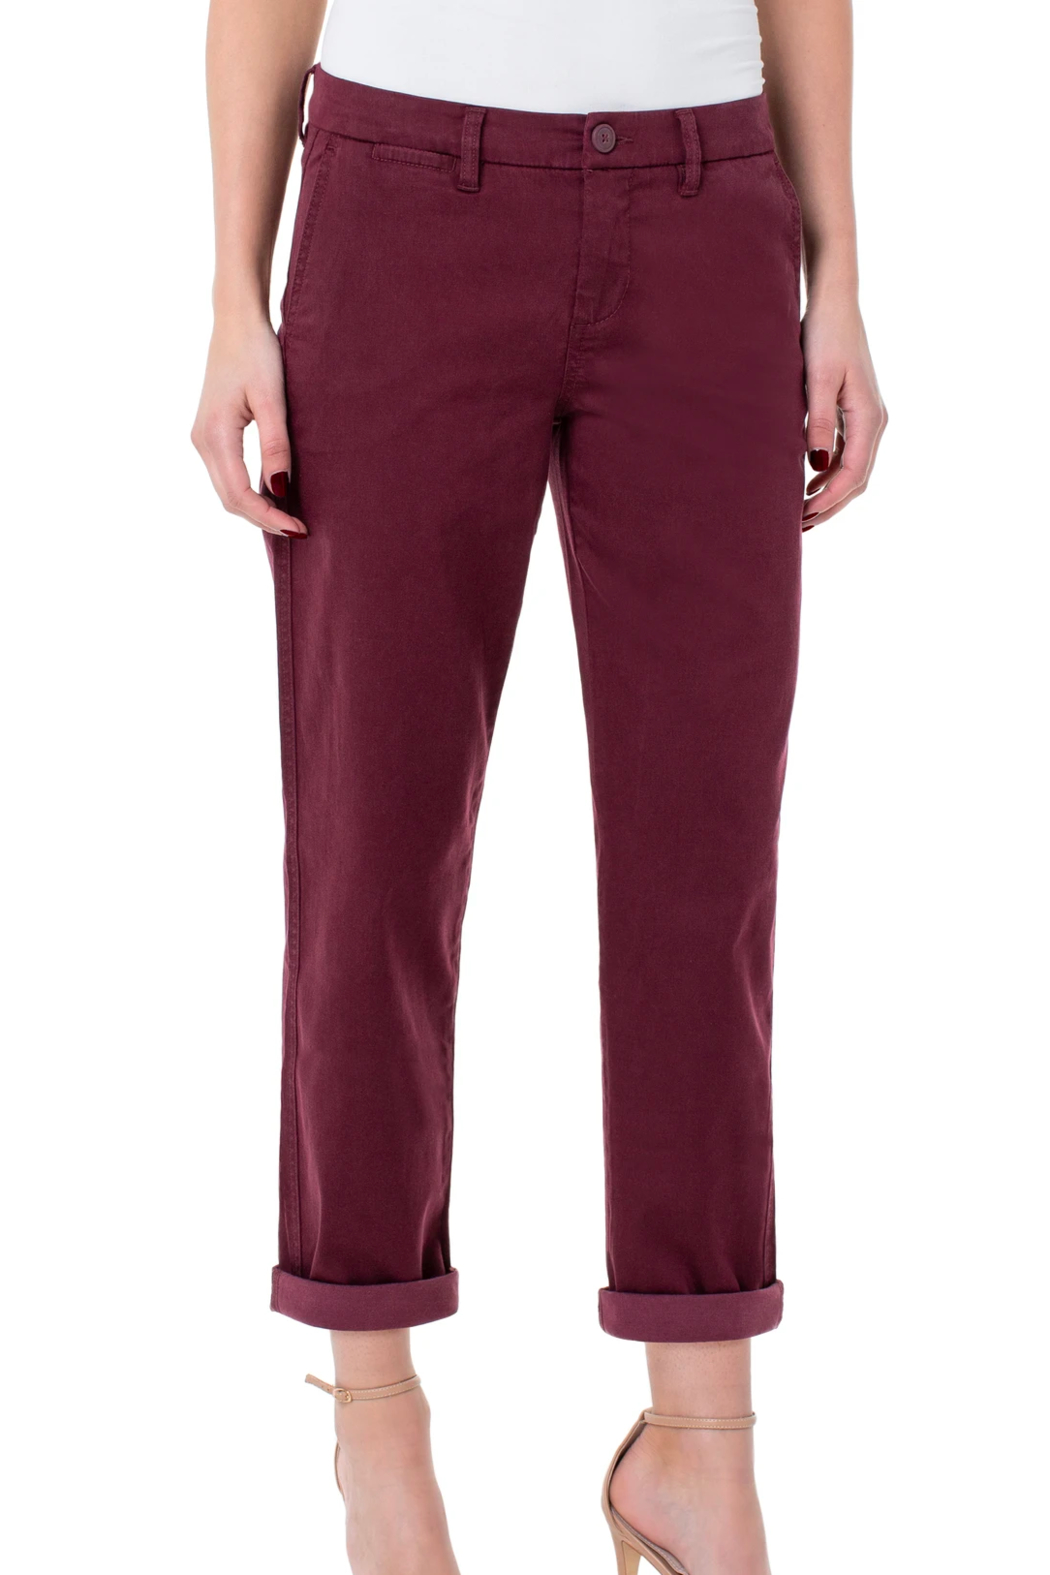 Liverpool Bobbie Trouser Pant - Back Cropped Image